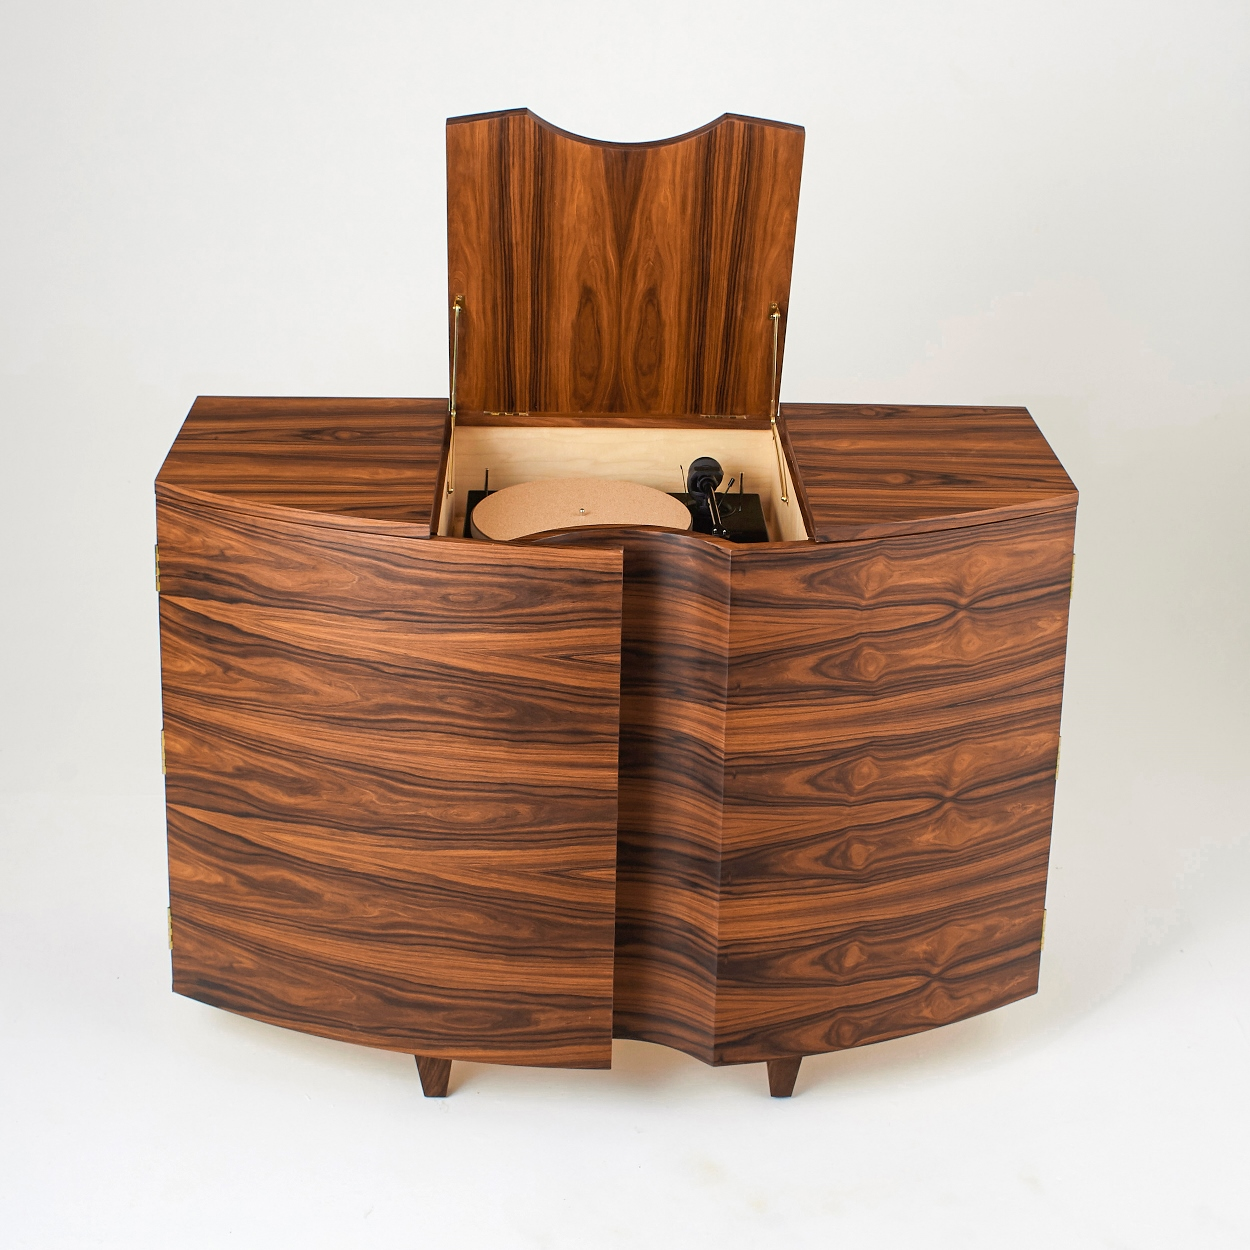 Rosewood Record Player Cabinet - Lid Open -Tricia Harris.jpg